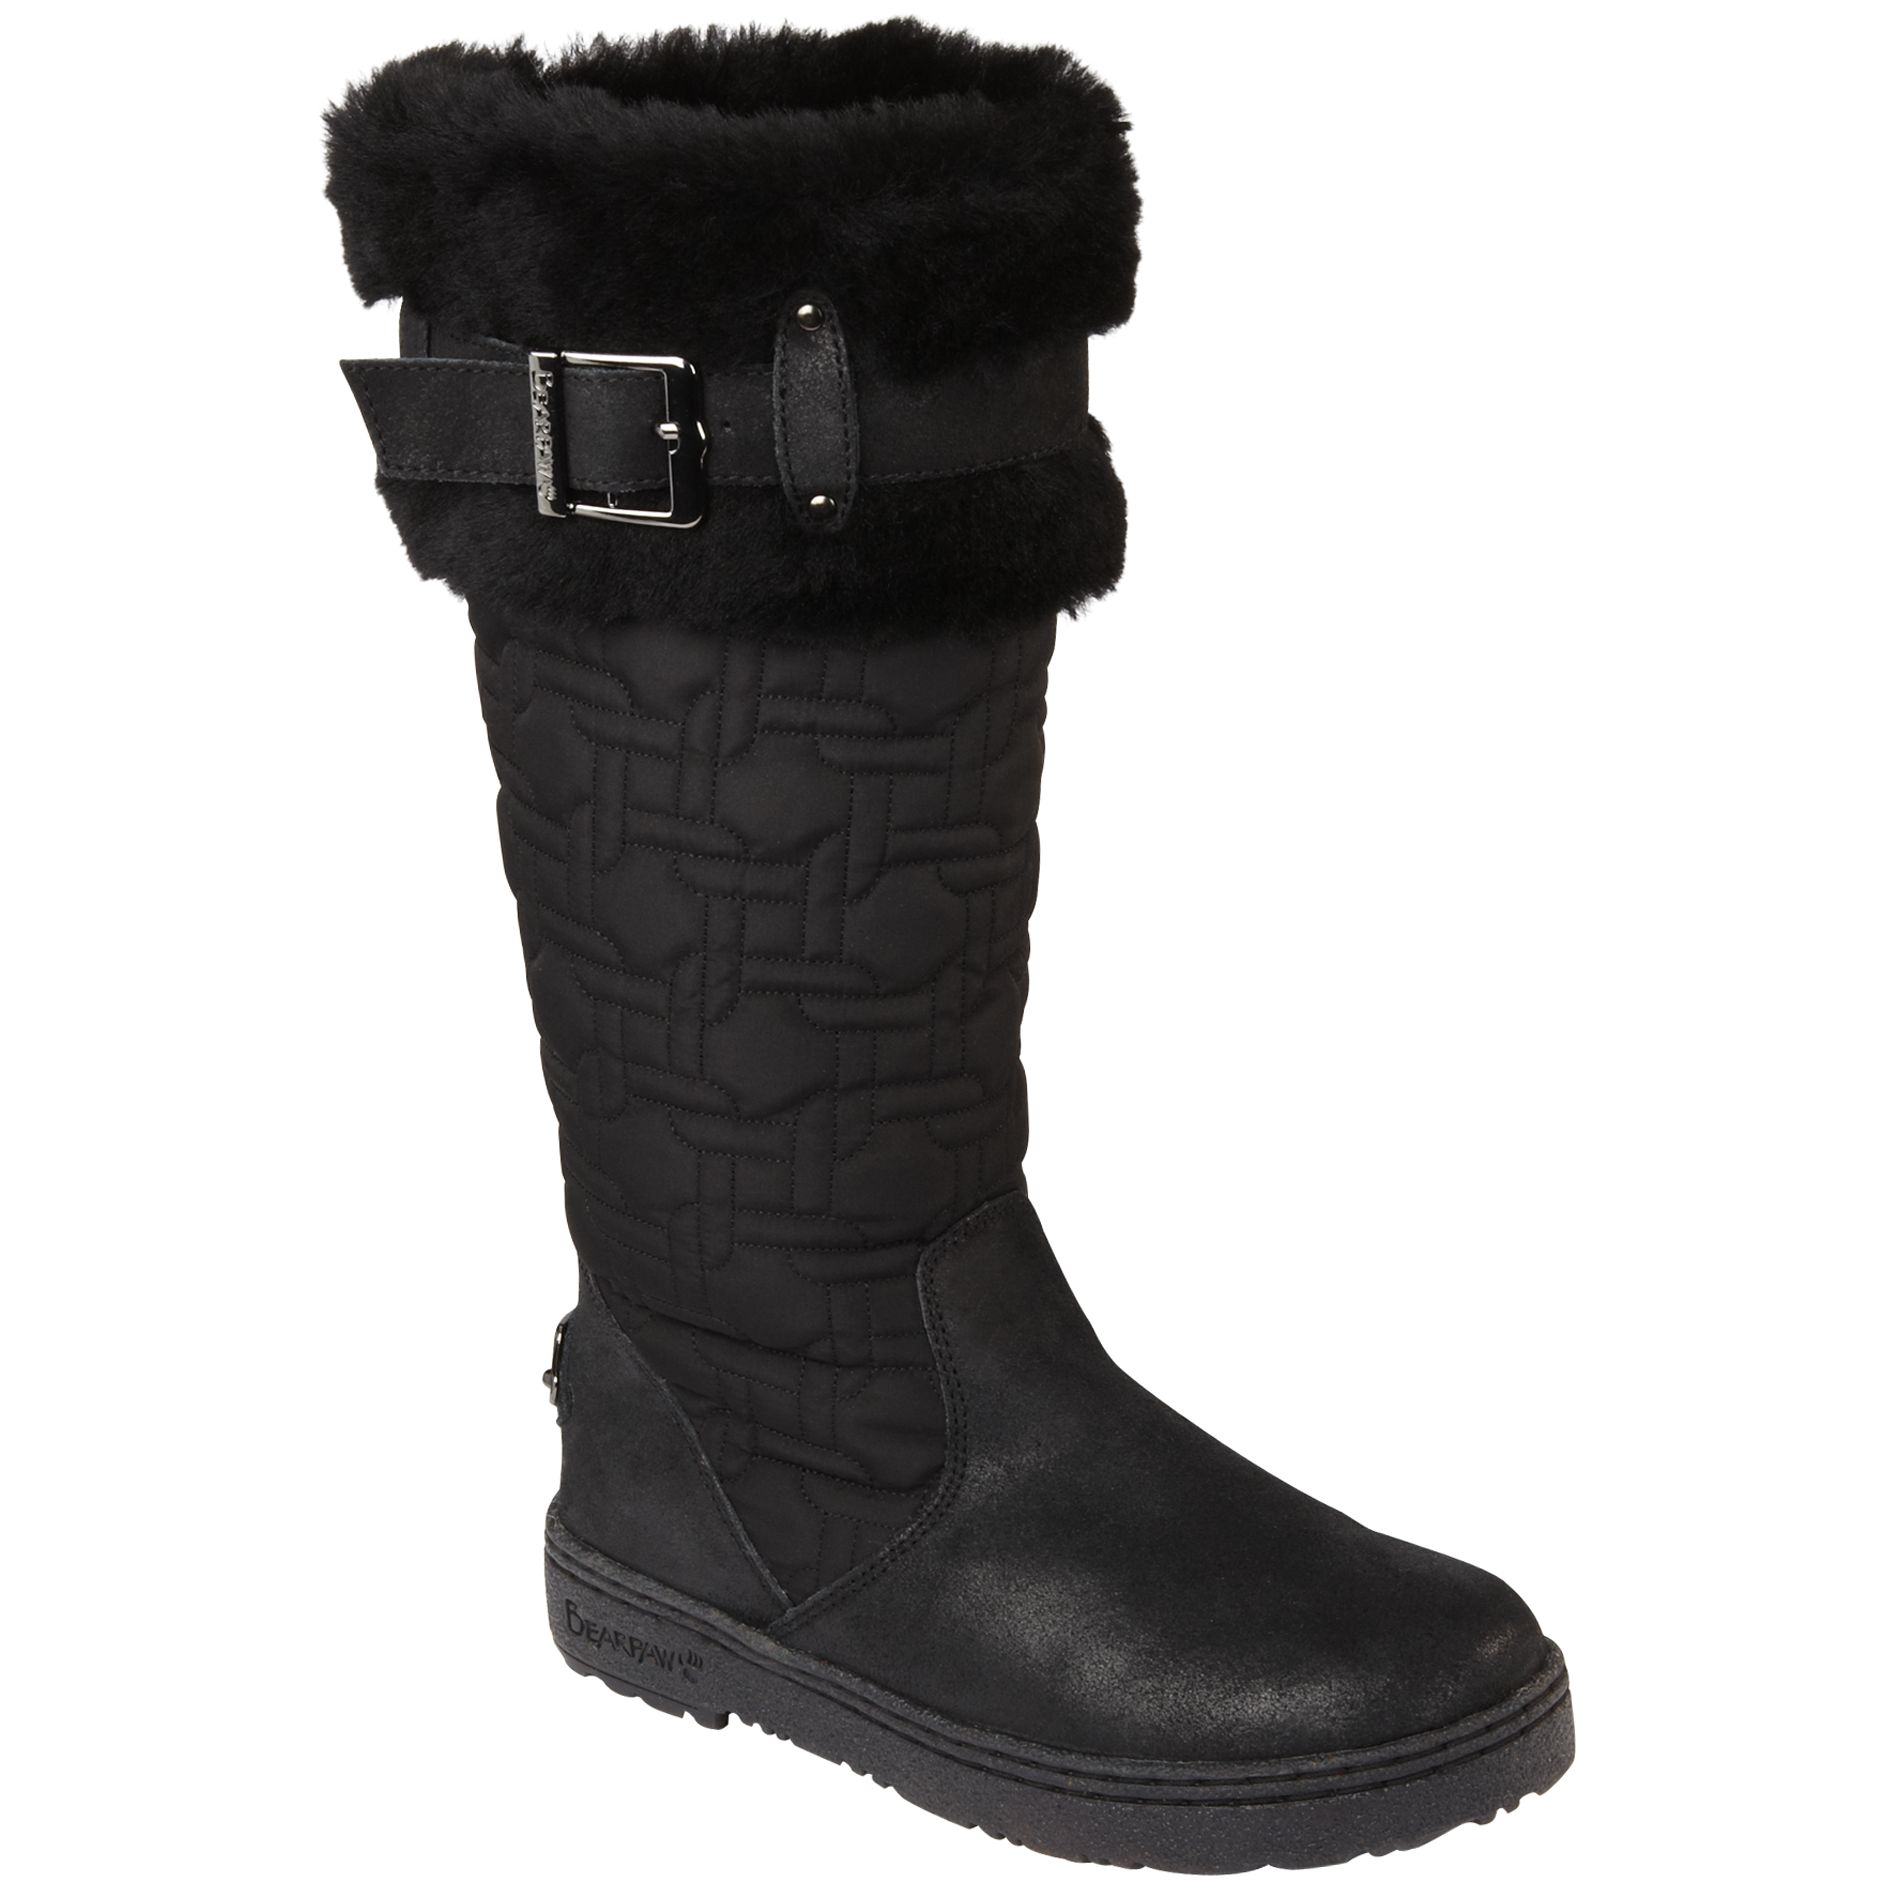 Women's Boot Nikiski - Black